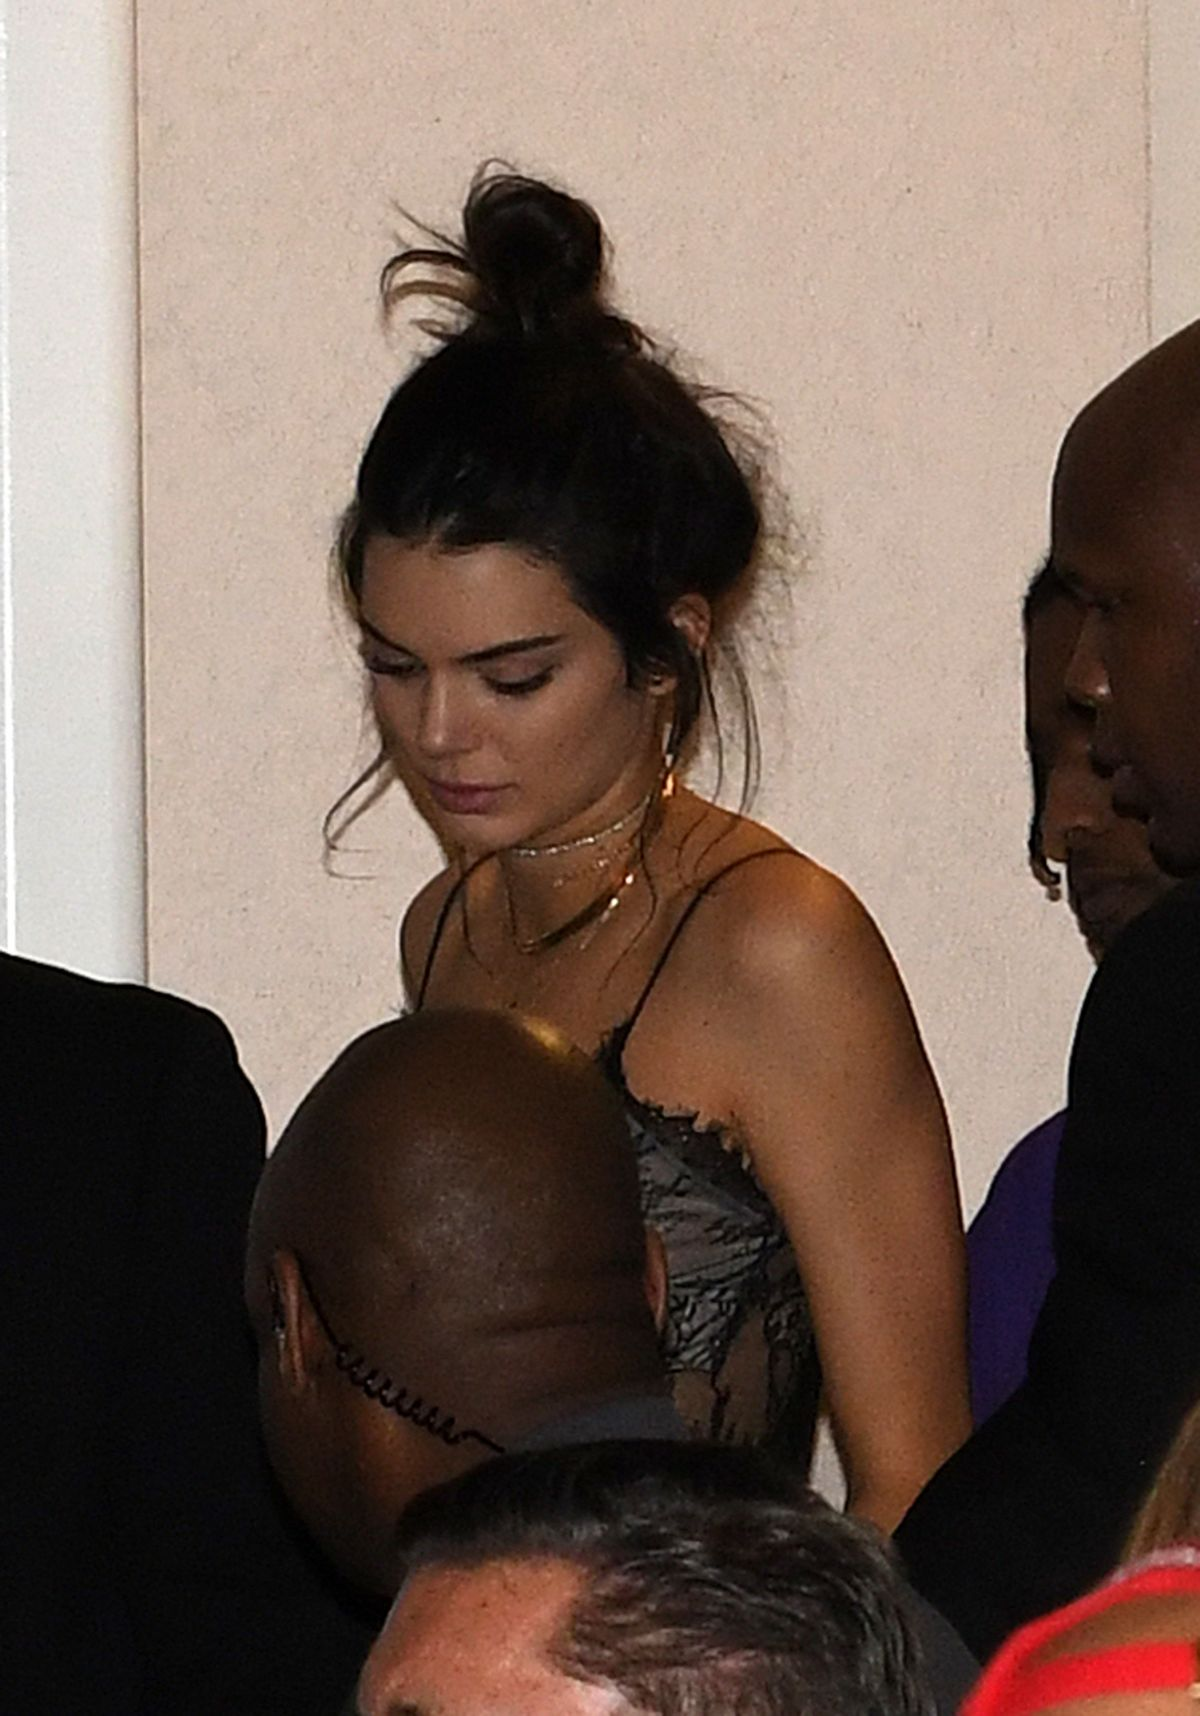 KENDALL JENNER Leaves a Nightclub in Miami 12/02/2016